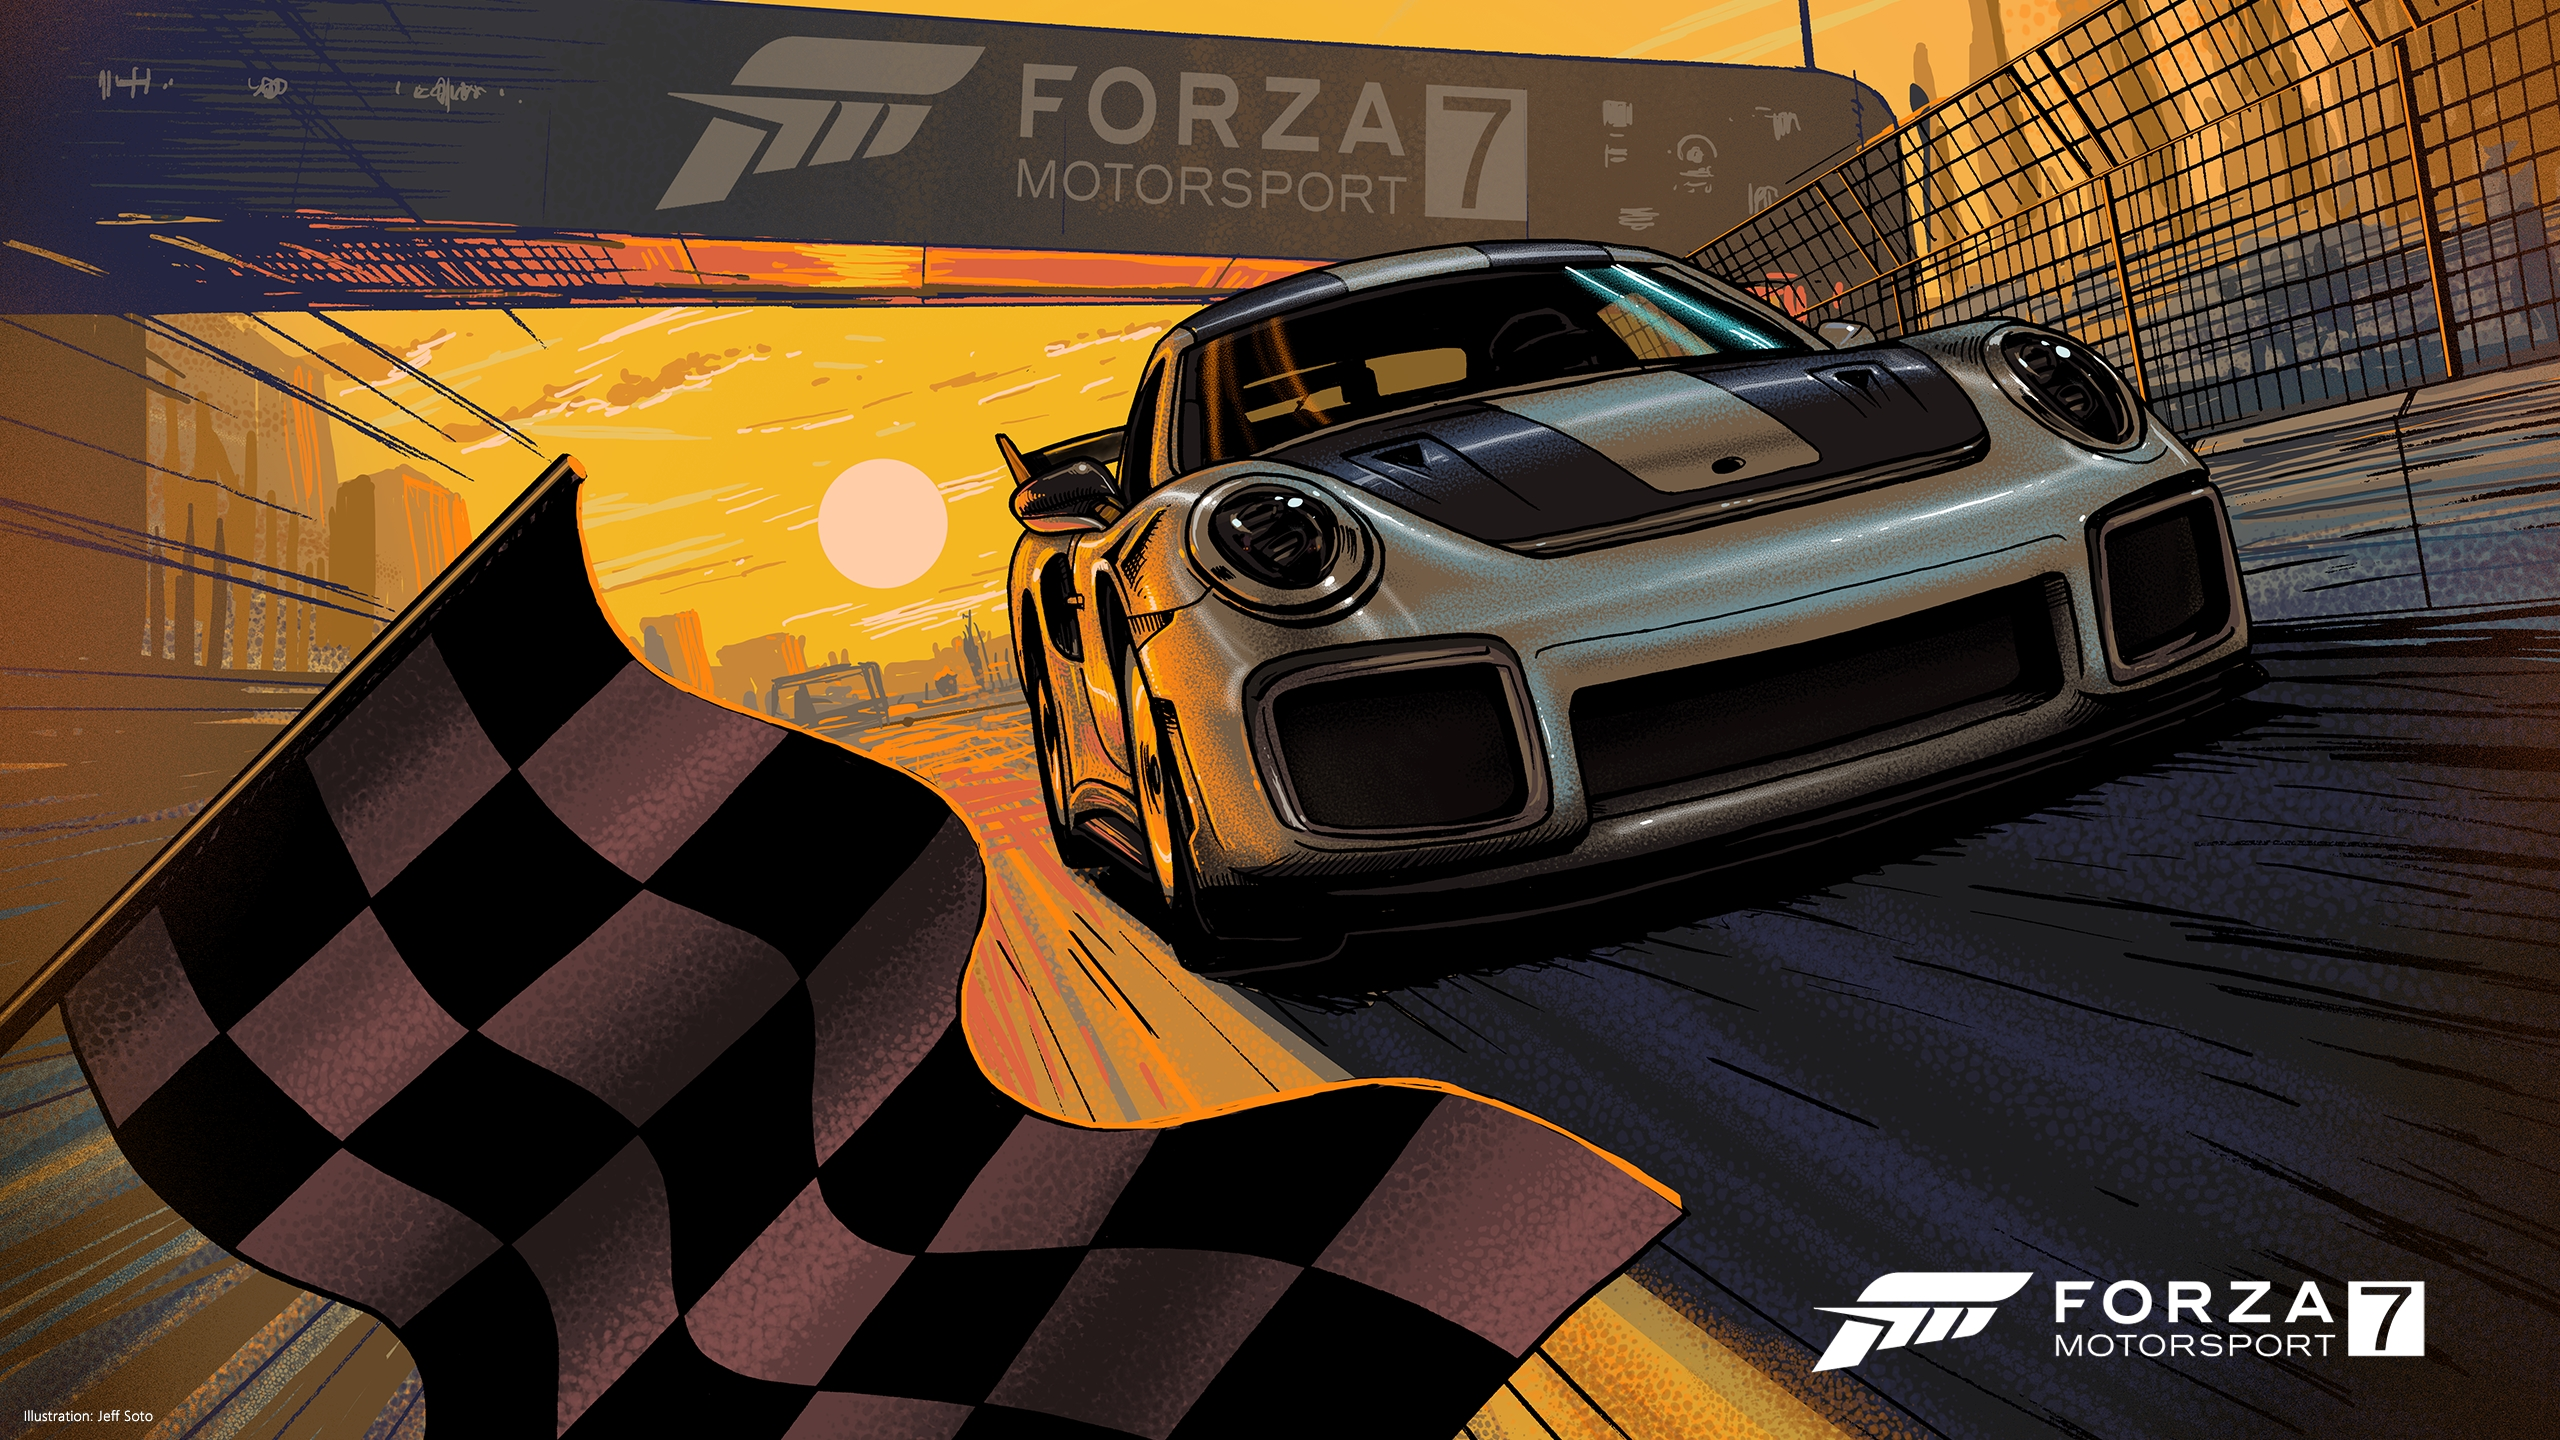 Forza Motorsport 7 Wallpapers Ultra Hd Gaming Backgrounds: Forza Motorsport 7 Artwork, HD Games, 4k Wallpapers